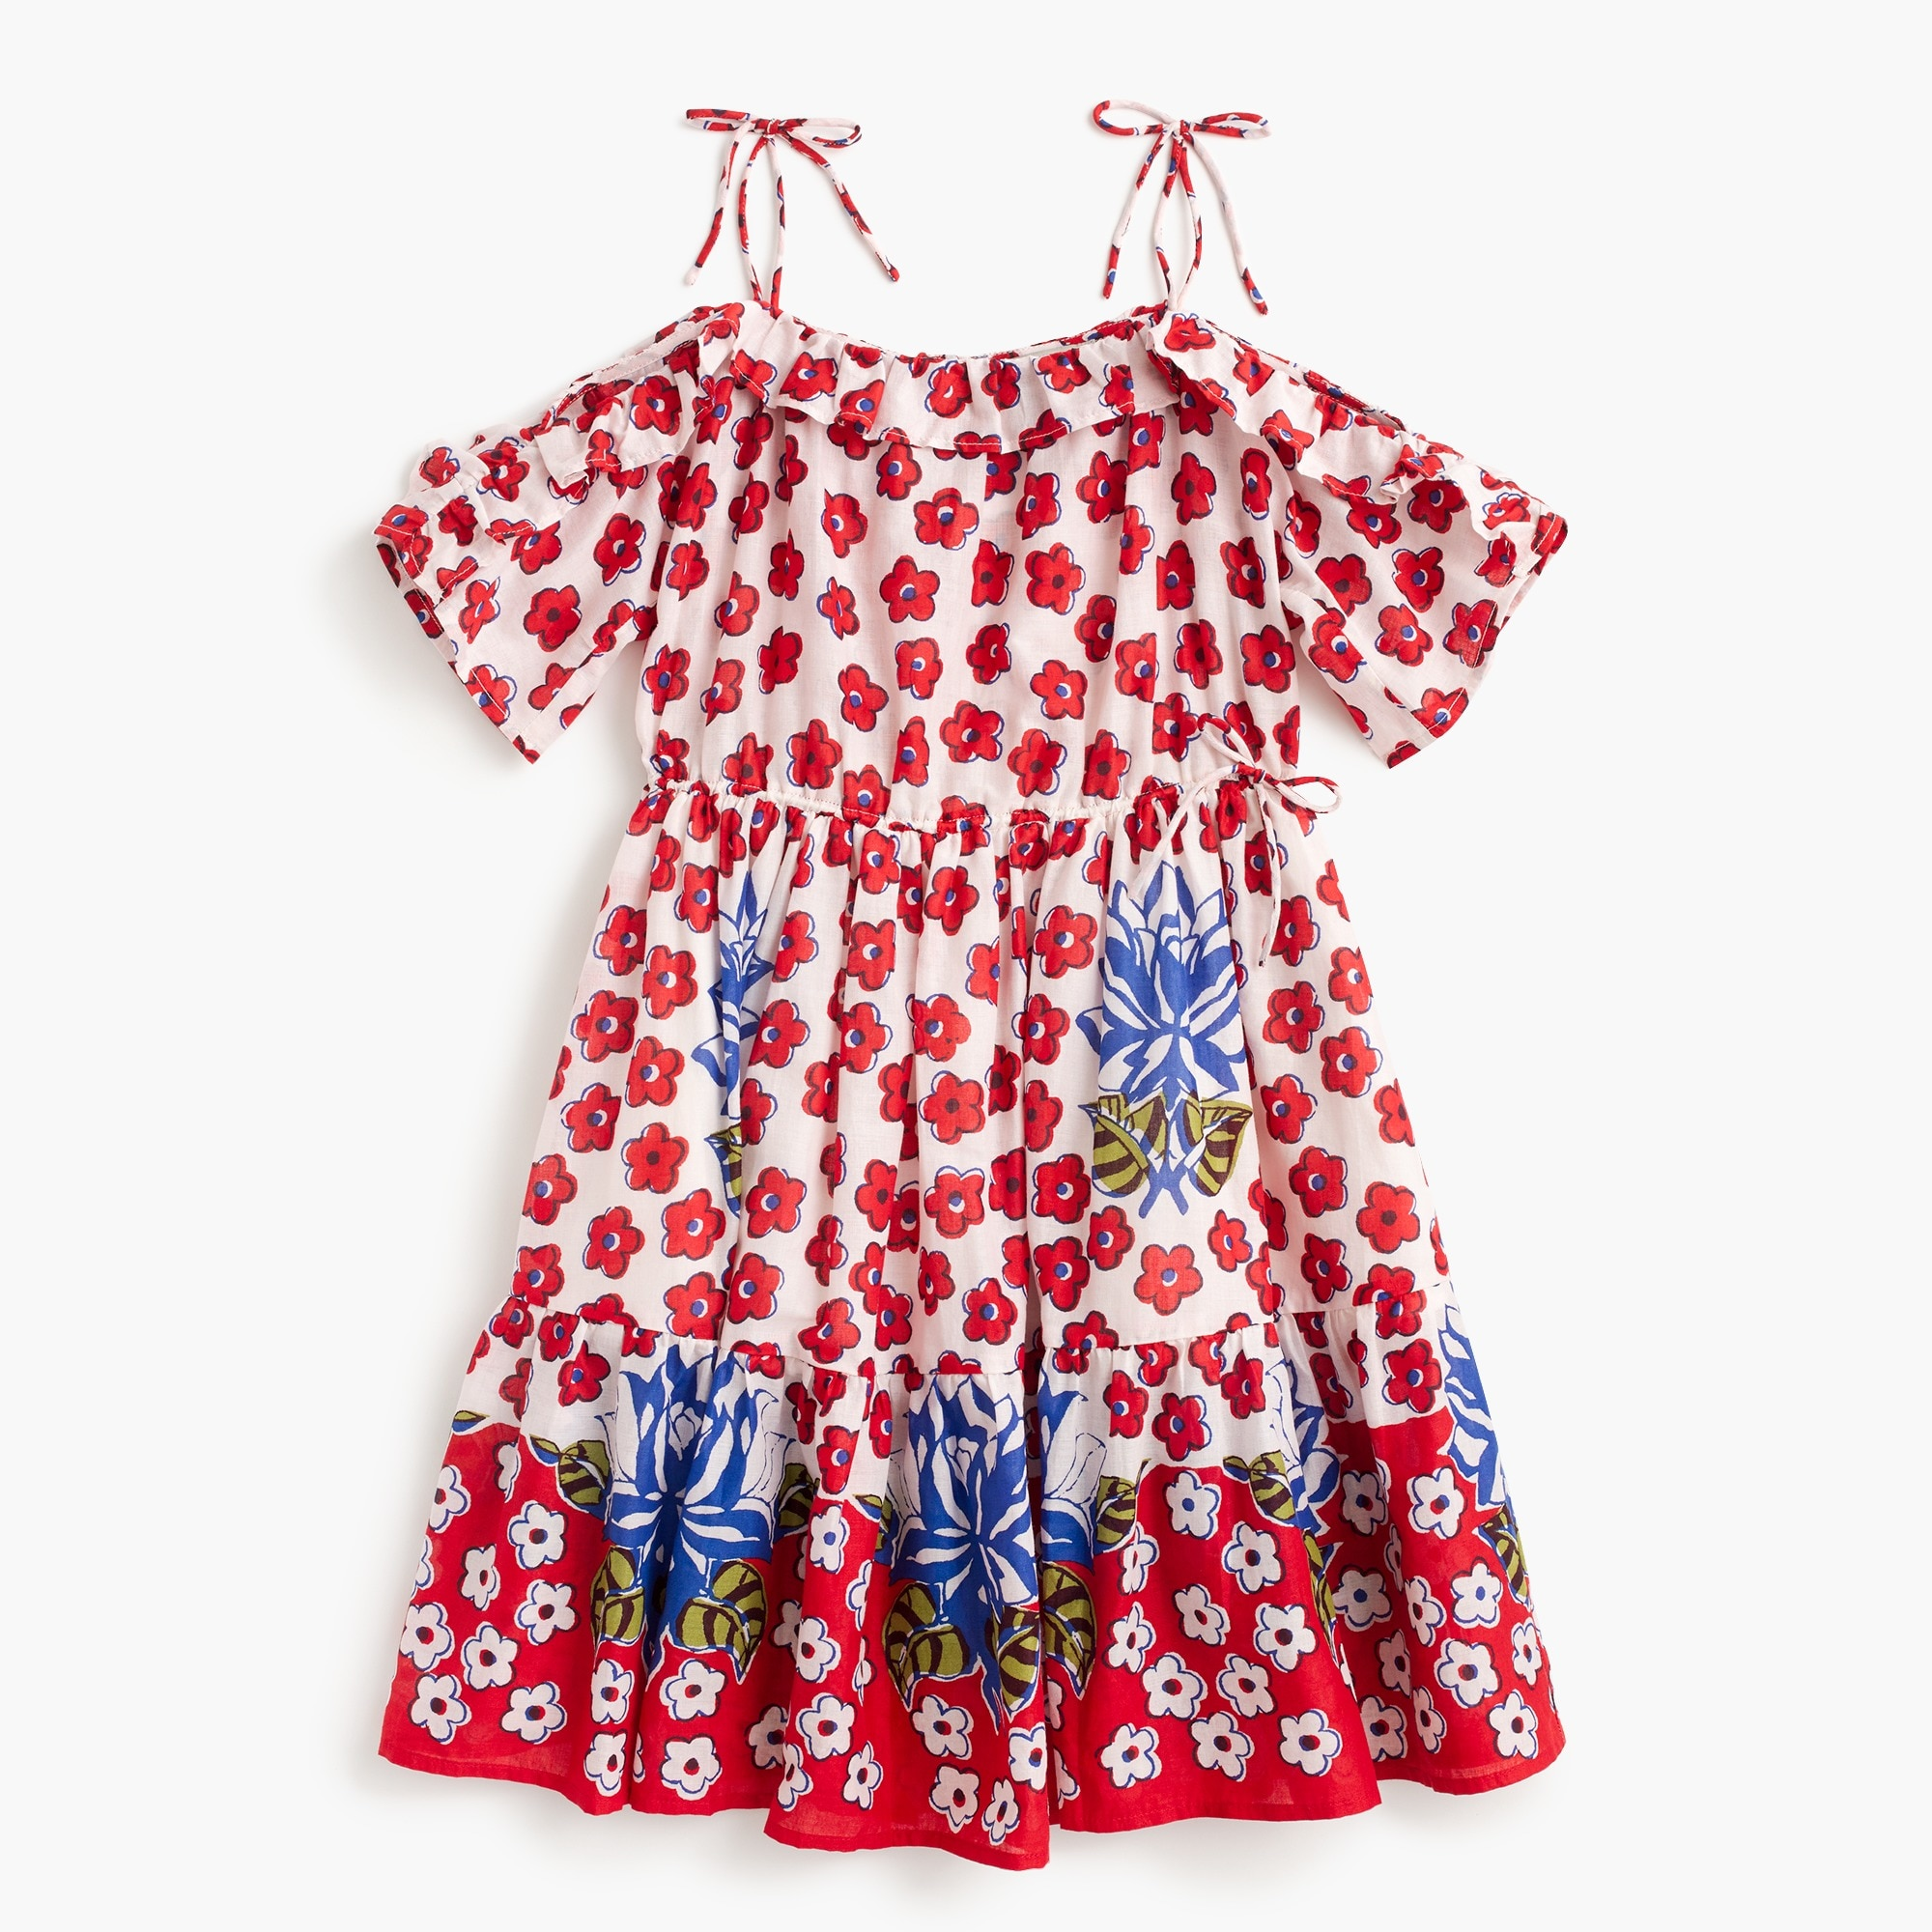 Girls' tie-shoulder dress in red floral